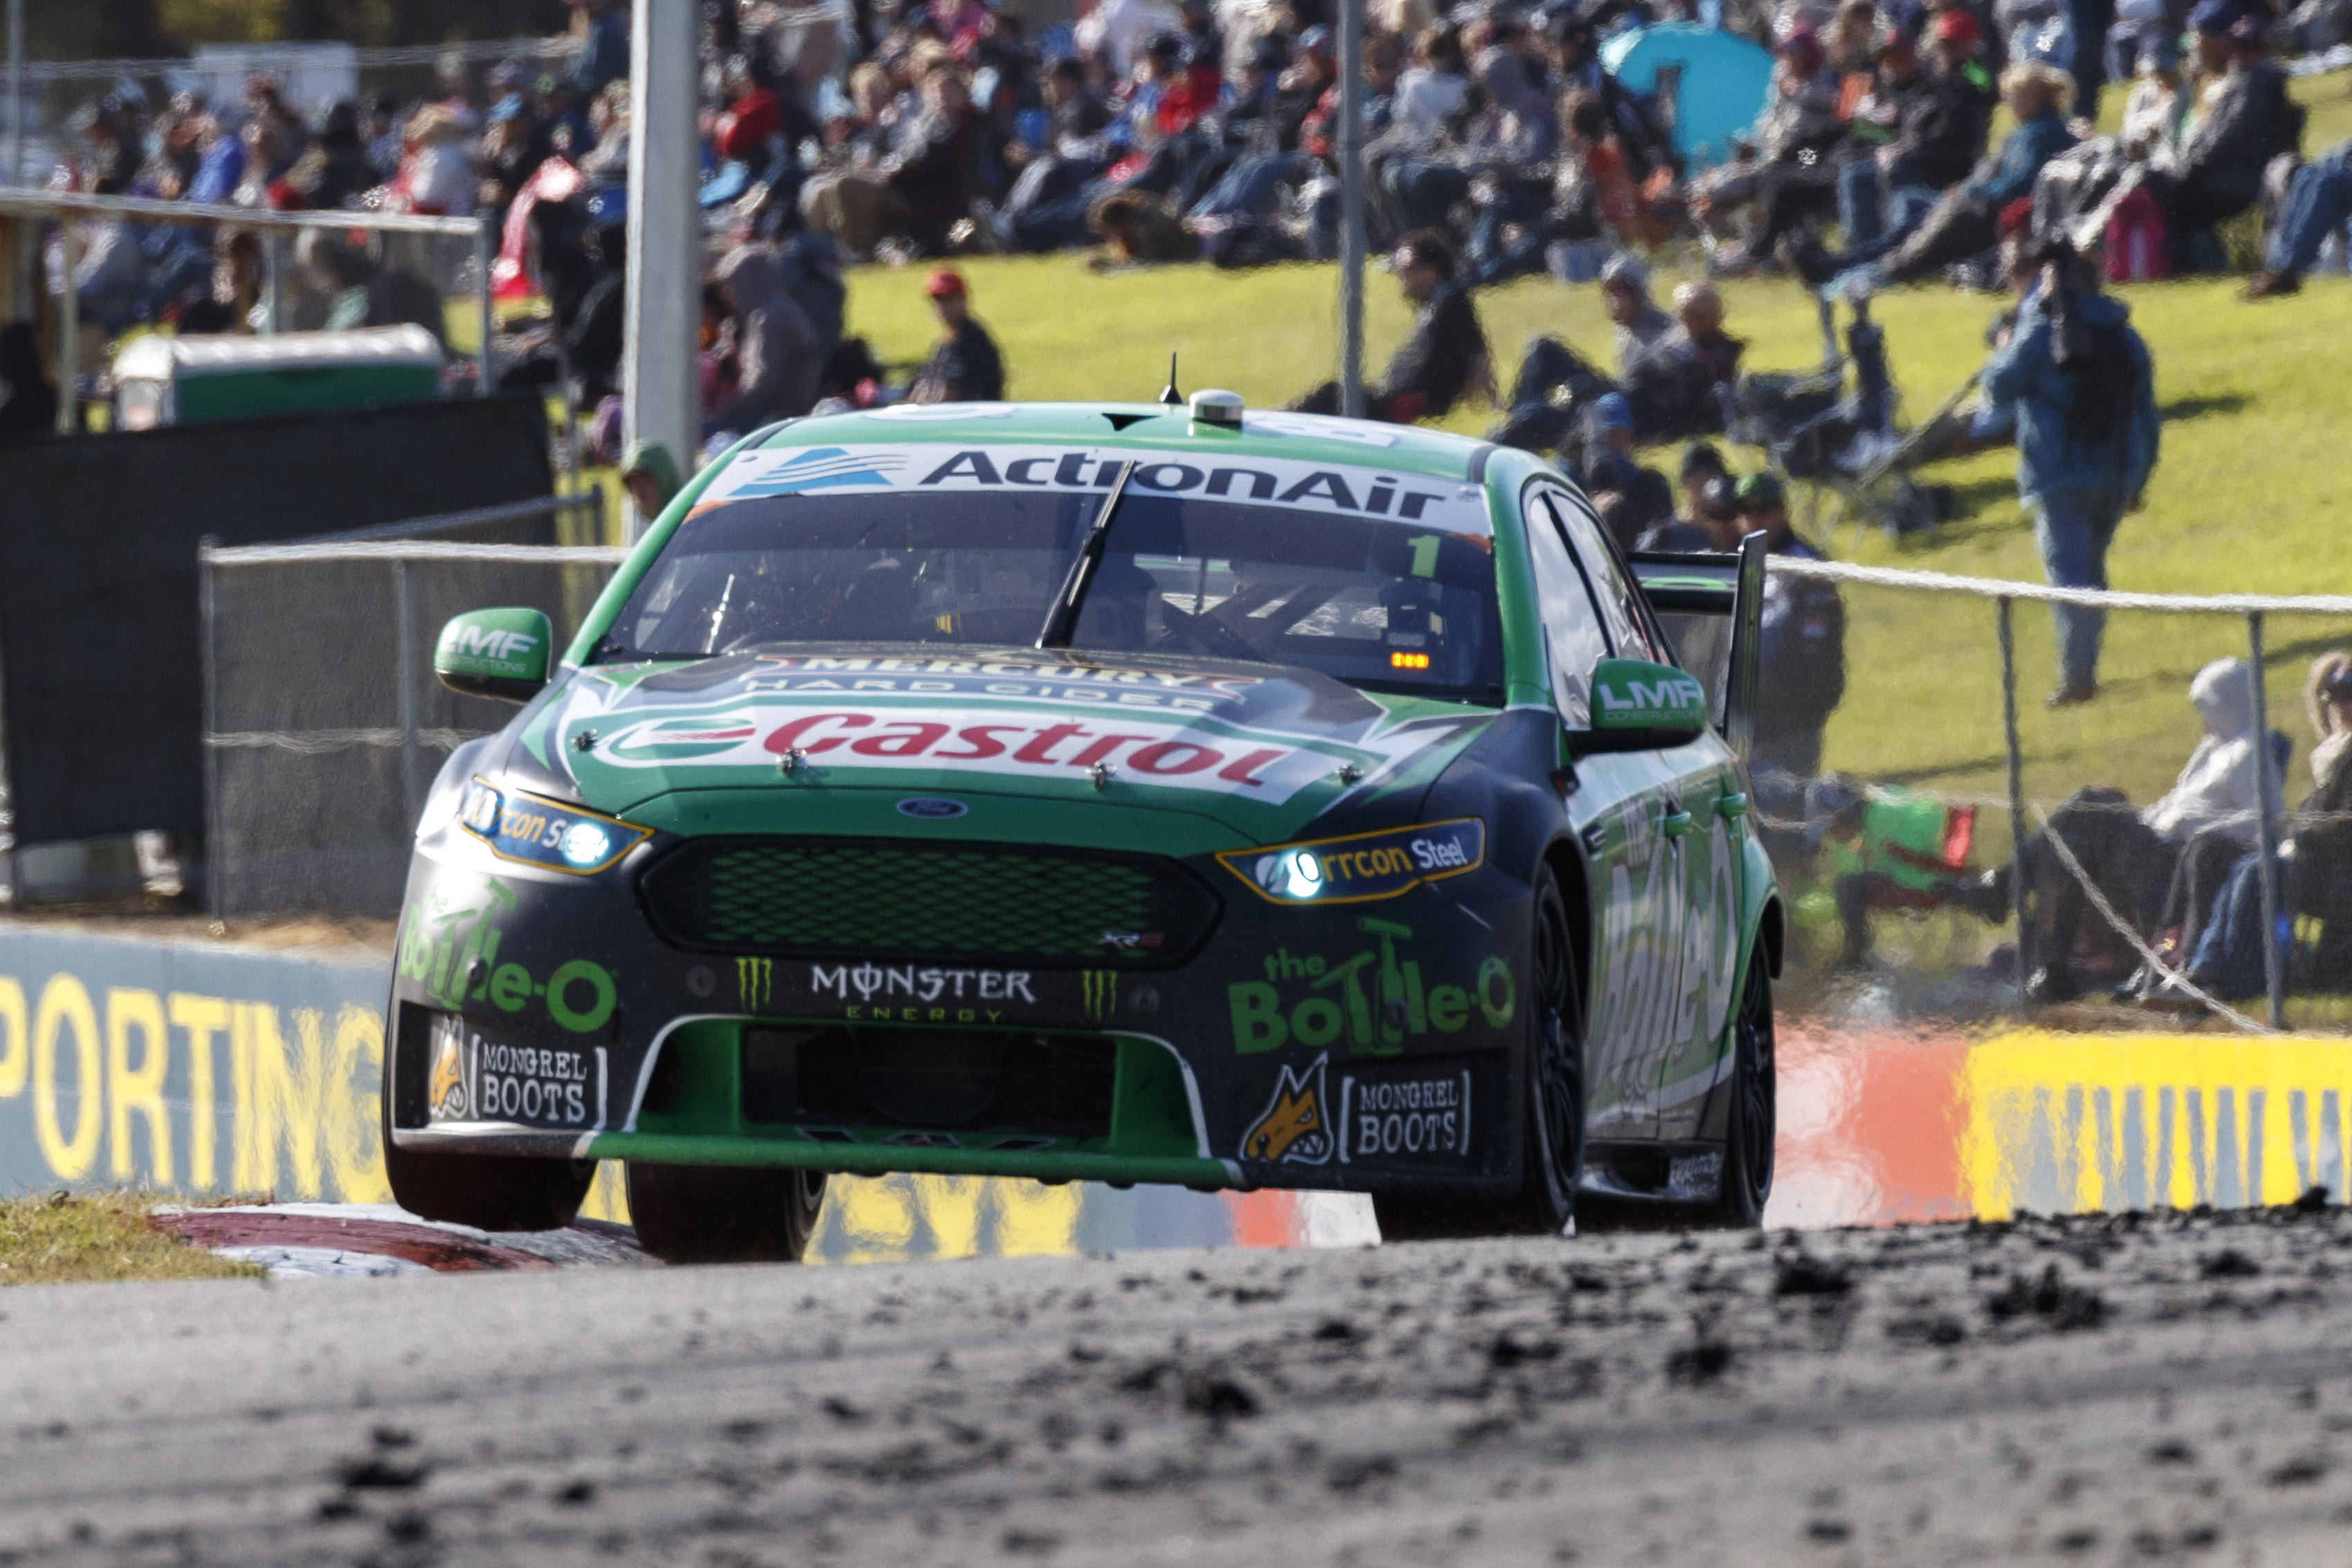 Mark Winterbottom of Prodrive Racing Australia wins the Perth SuperSprint,  at the Barbagallo Raceway, Wanneroo, Western Australia, May 08, 2016.